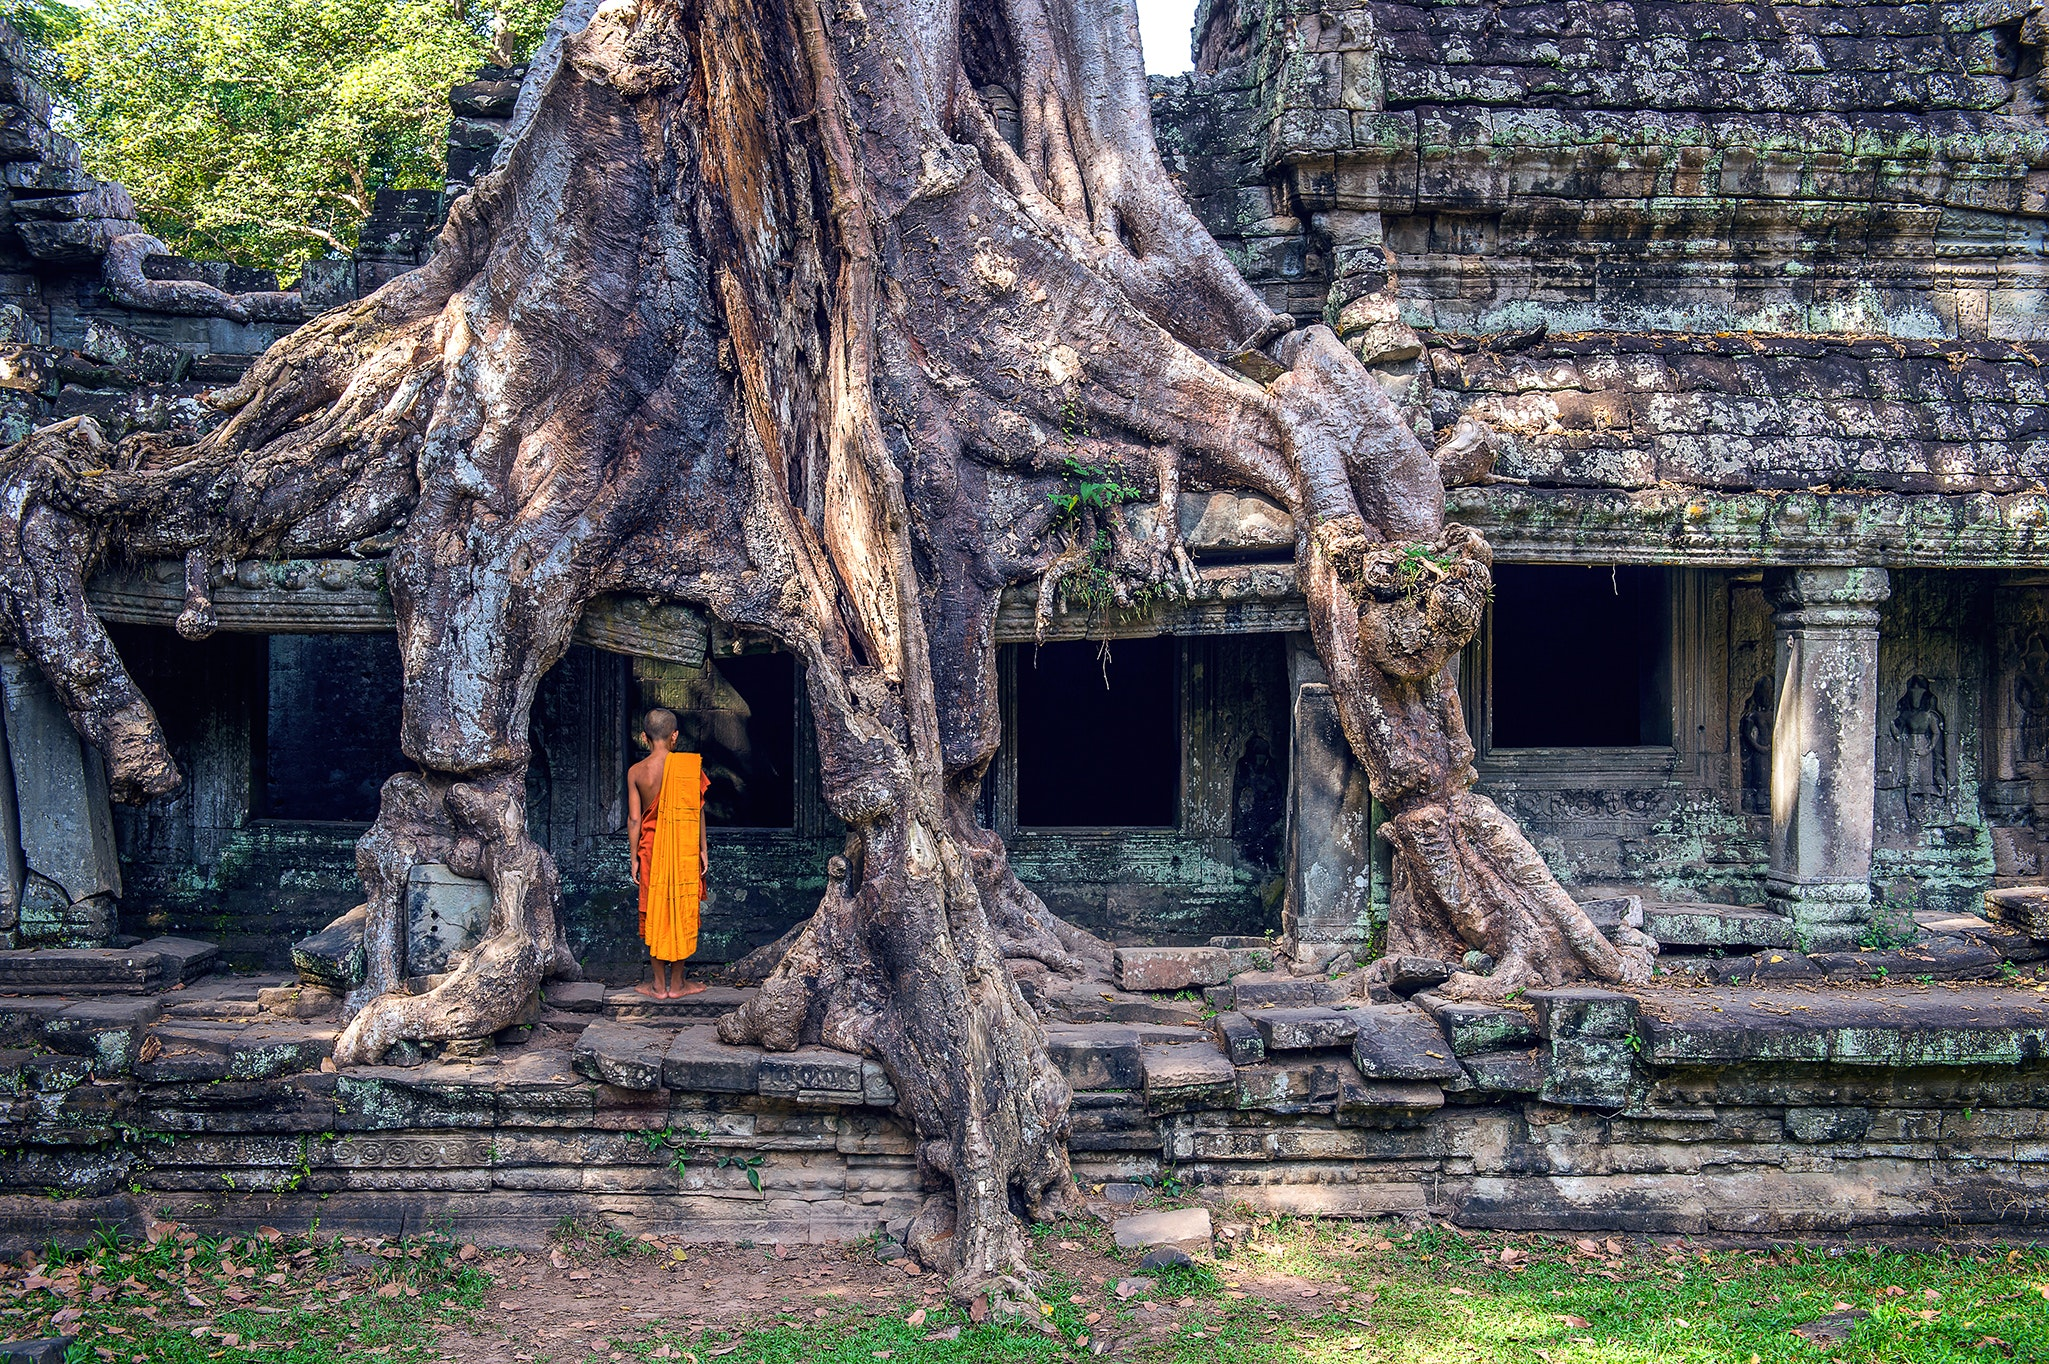 Angkor Wat is one of the world's largest religious monuments, with five iconic towers that represent the five peaks of Mount Meru, a sacred mountain in Hindu mythology.